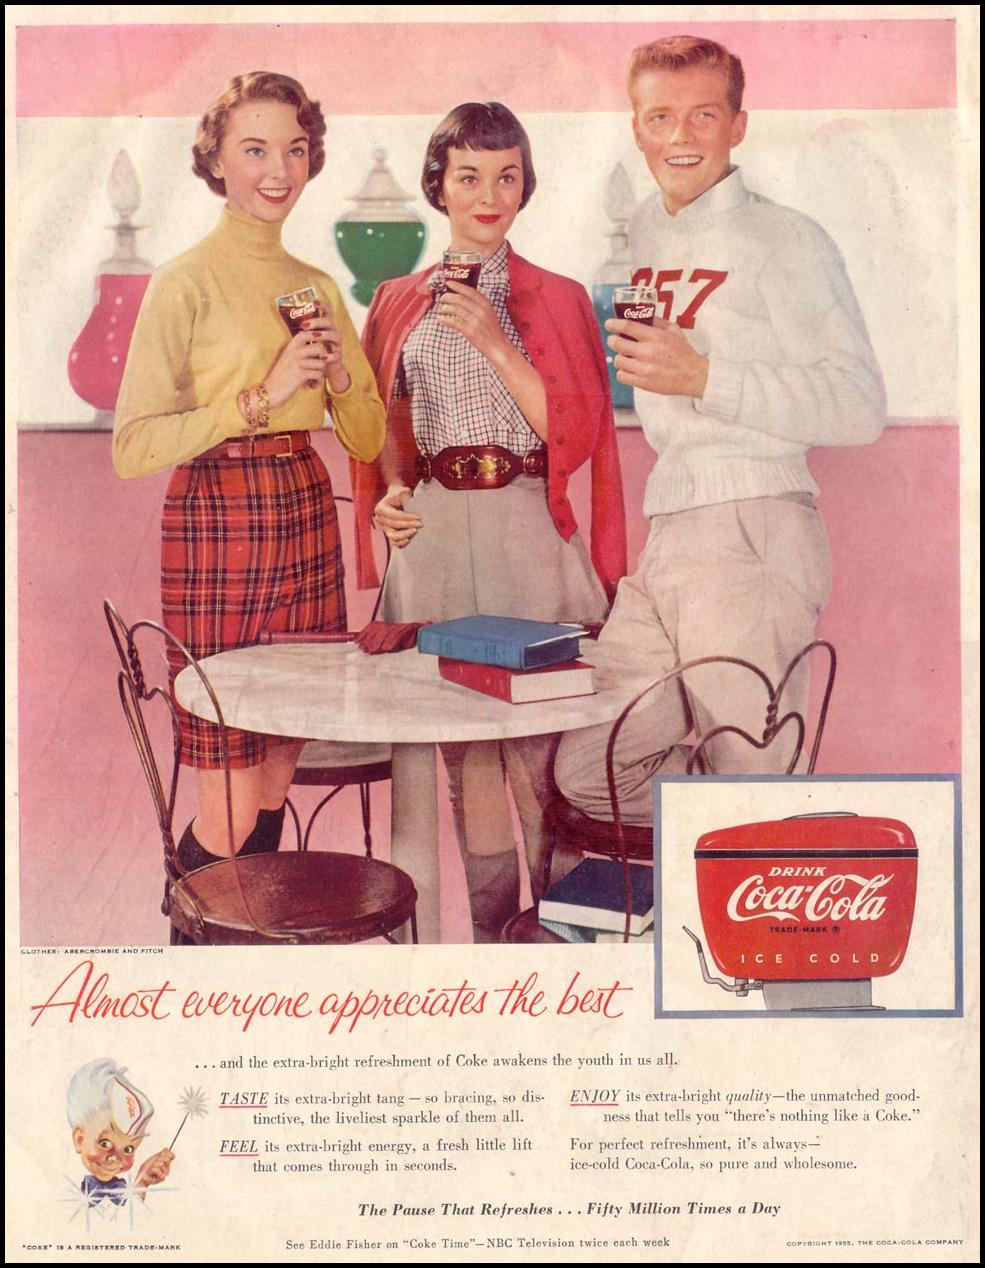 COCA-COLA SATURDAY EVENING POST 09/03/1955 BACK COVER